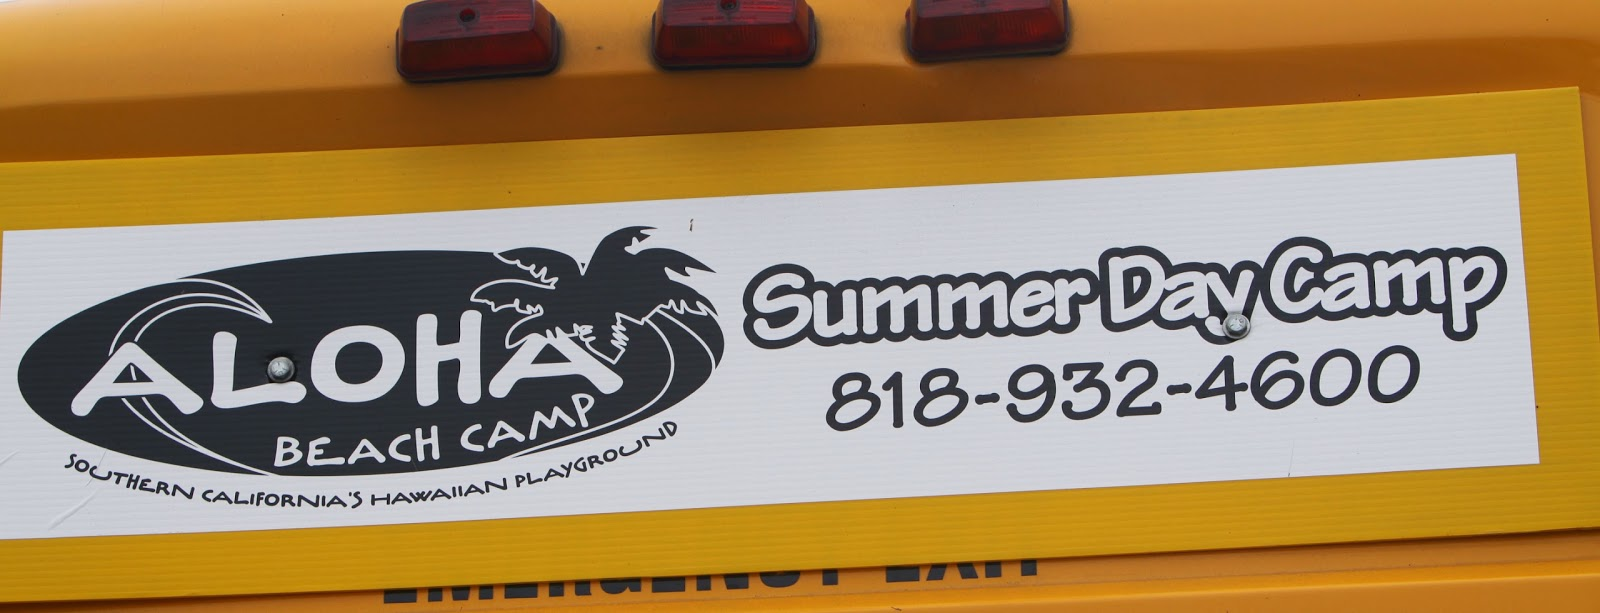 Aloha Beach Camp Summer Camp Bus Sign with Logo and Phone Number